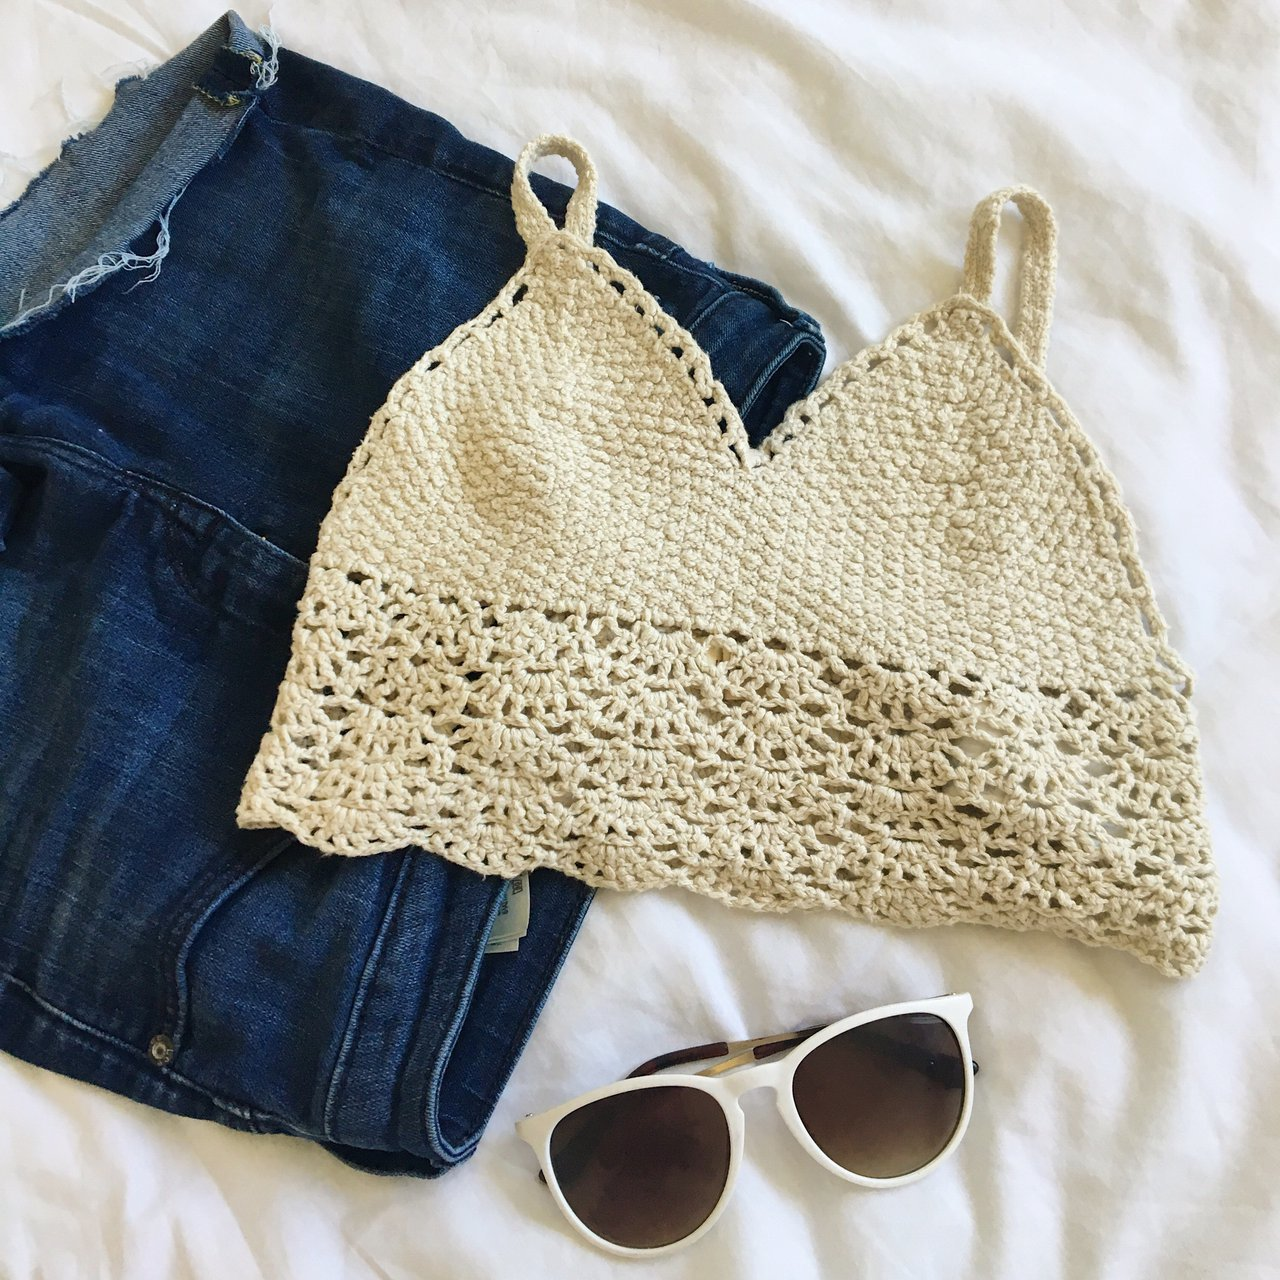 Cute crochet bralette from hollister Great for summer or and - Depop b9d430c20